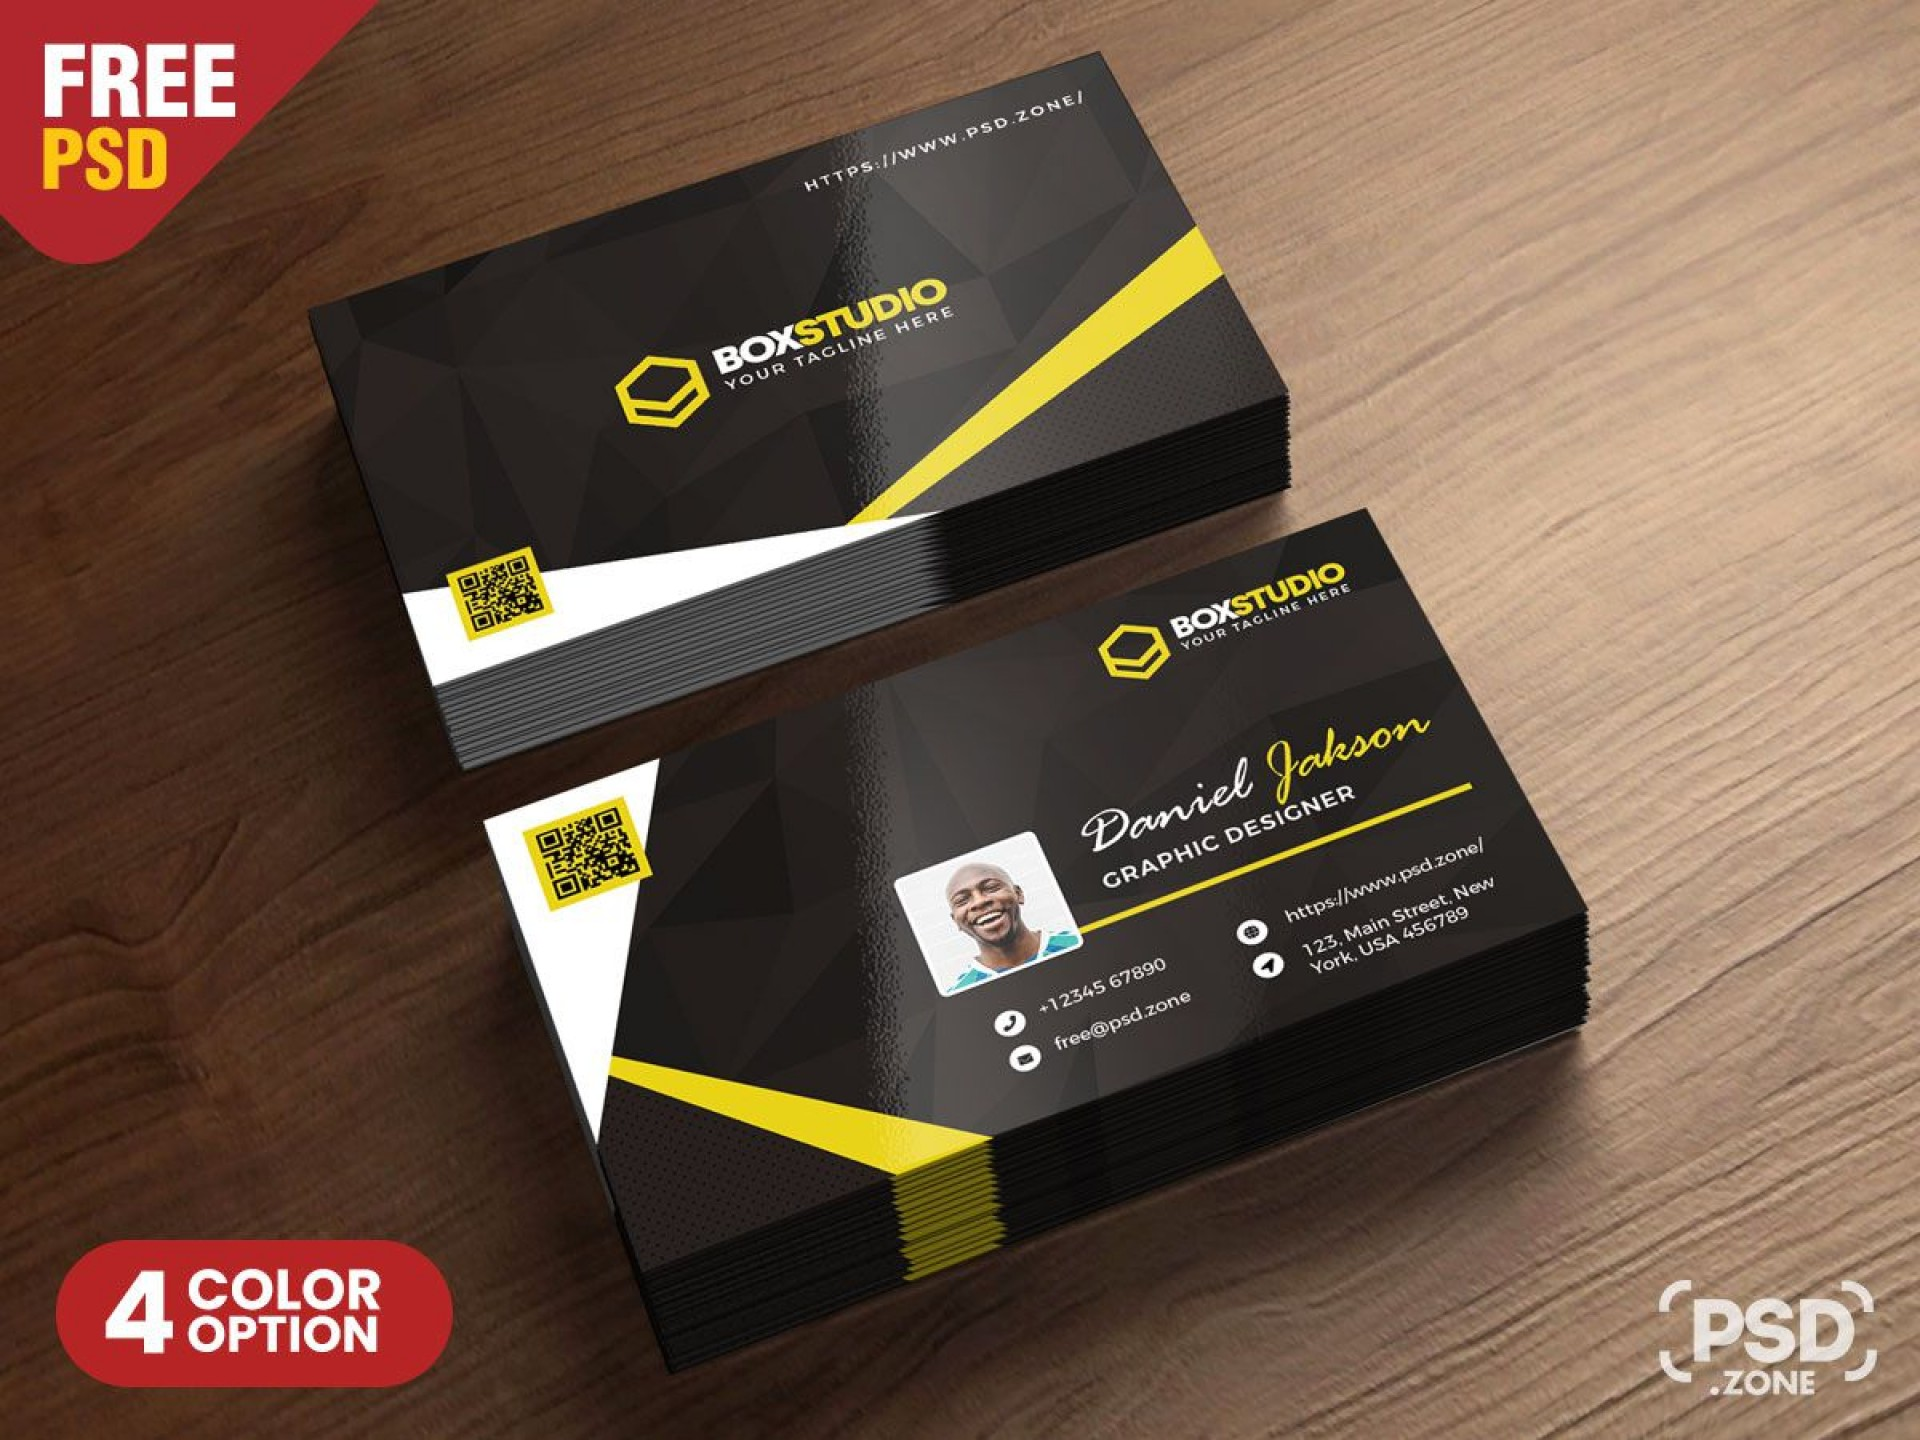 007 Stupendou Psd Busines Card Template Highest Quality  Computer Free With Bleed1920